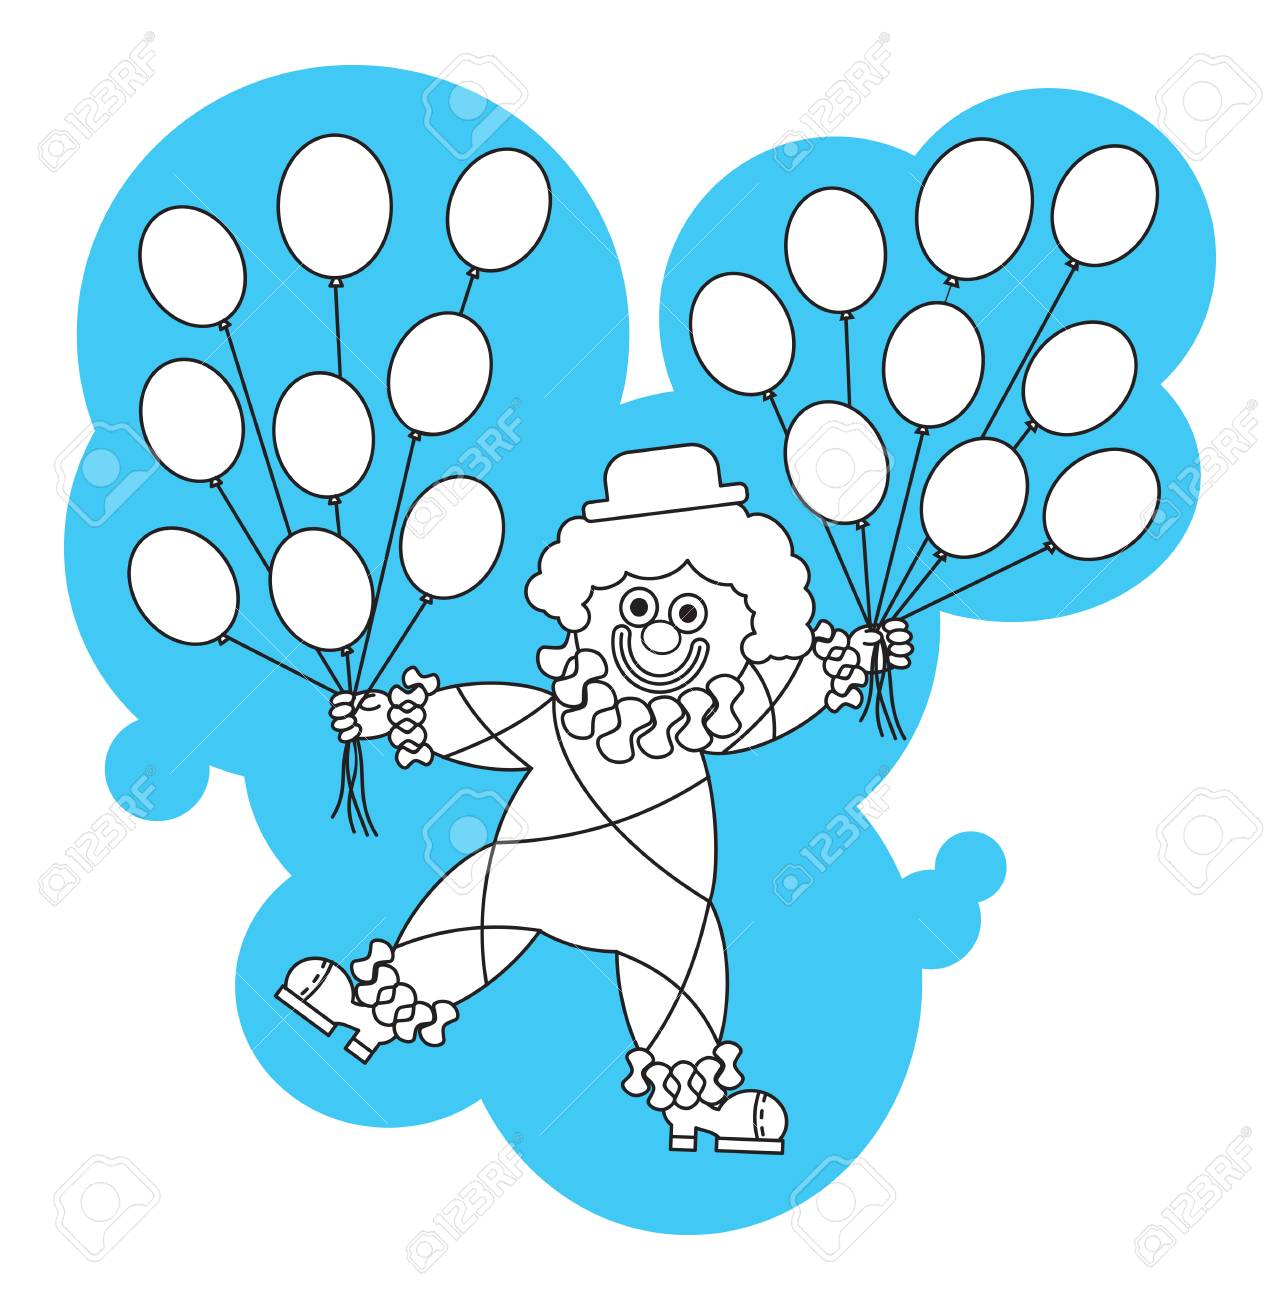 Funny Clown With Balloons. Printable Coloring Page For Kids Royalty ...